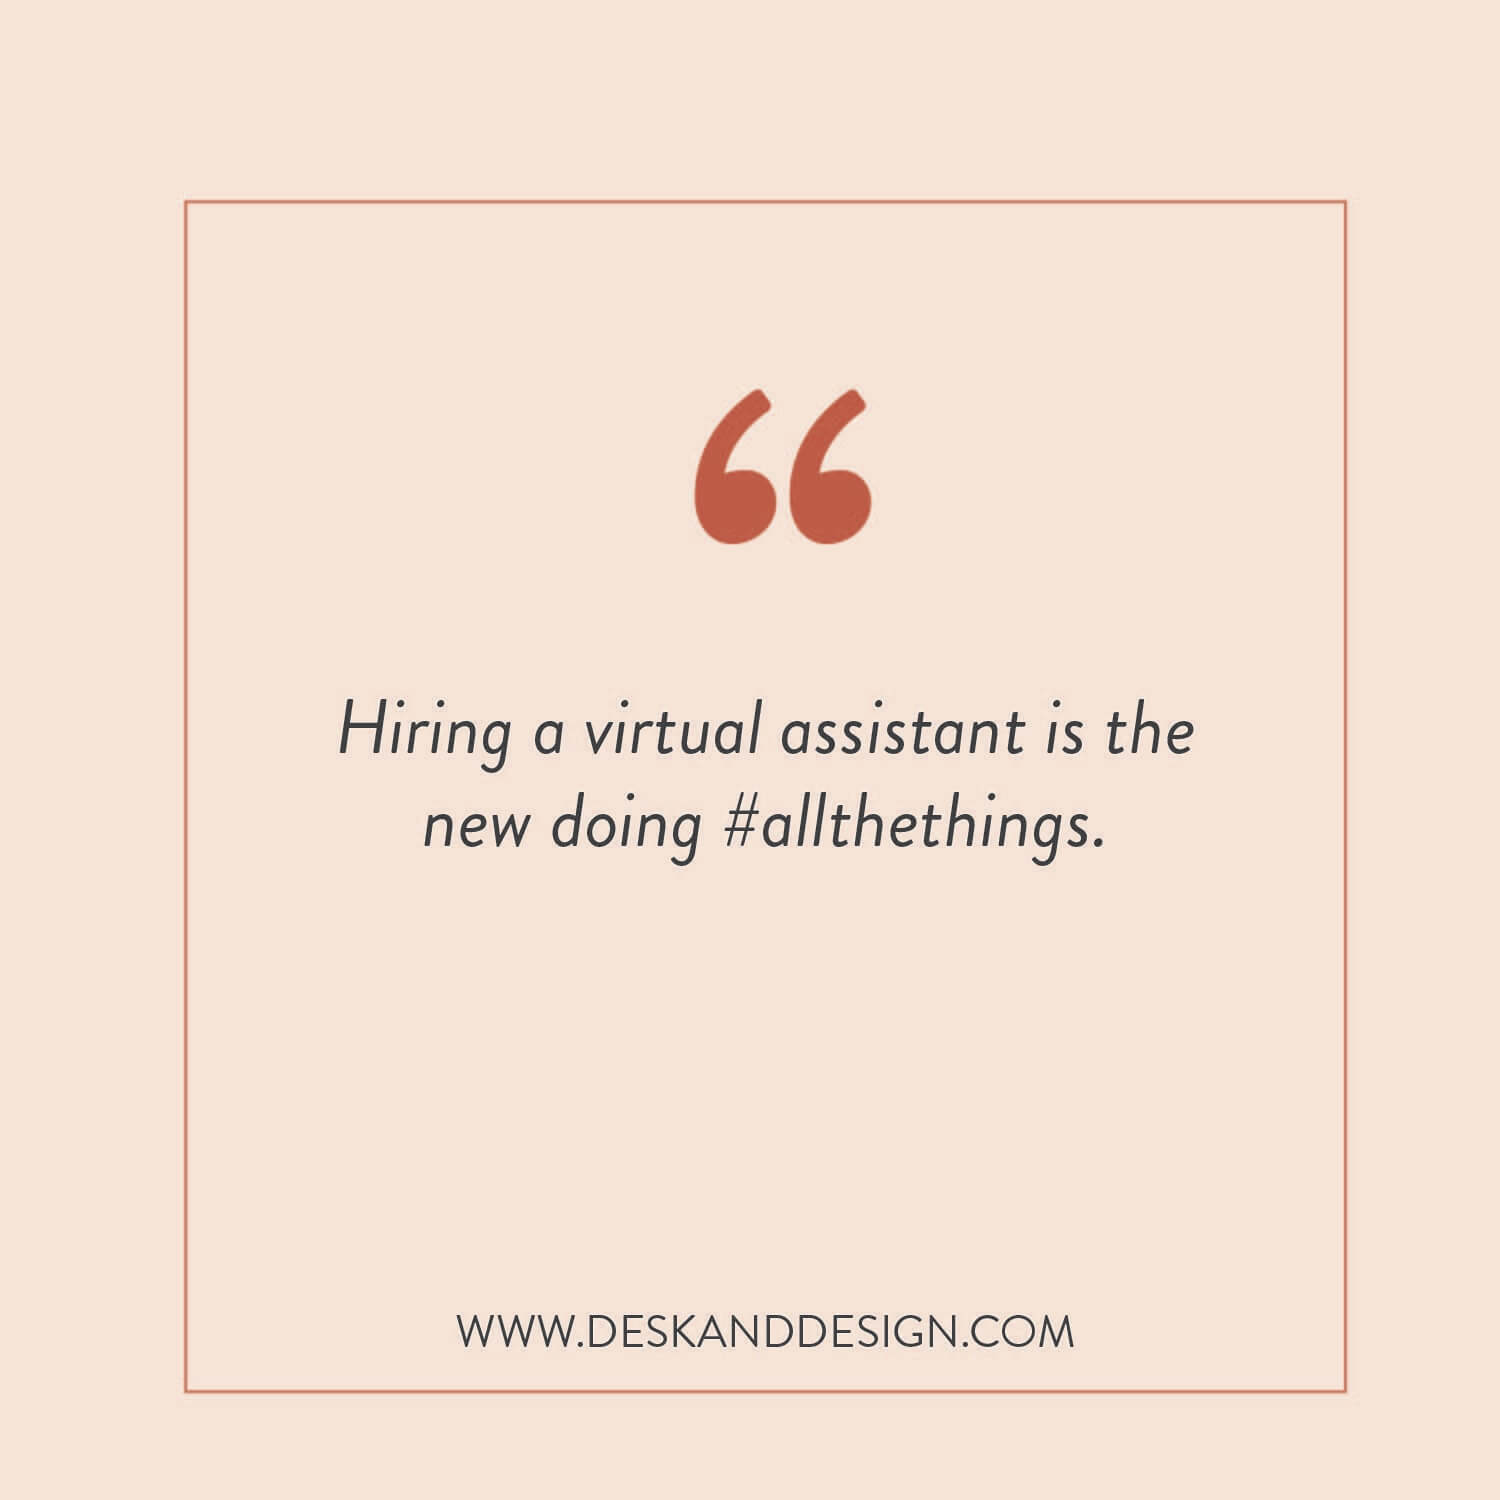 What is a virtual assistant? And why do I need one? Find out why hiring a virtual assistant is the new doing #allthethings at www.deskanddesign.com